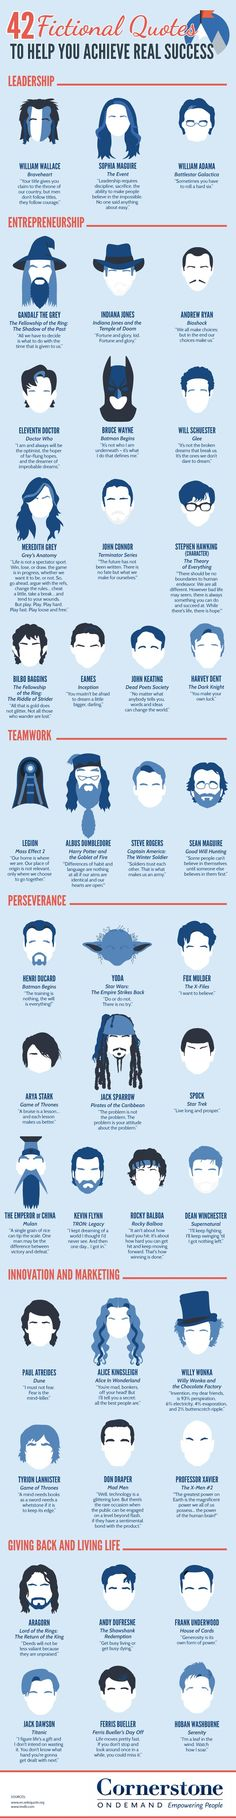 42 fictional quotes to help you achieve real success